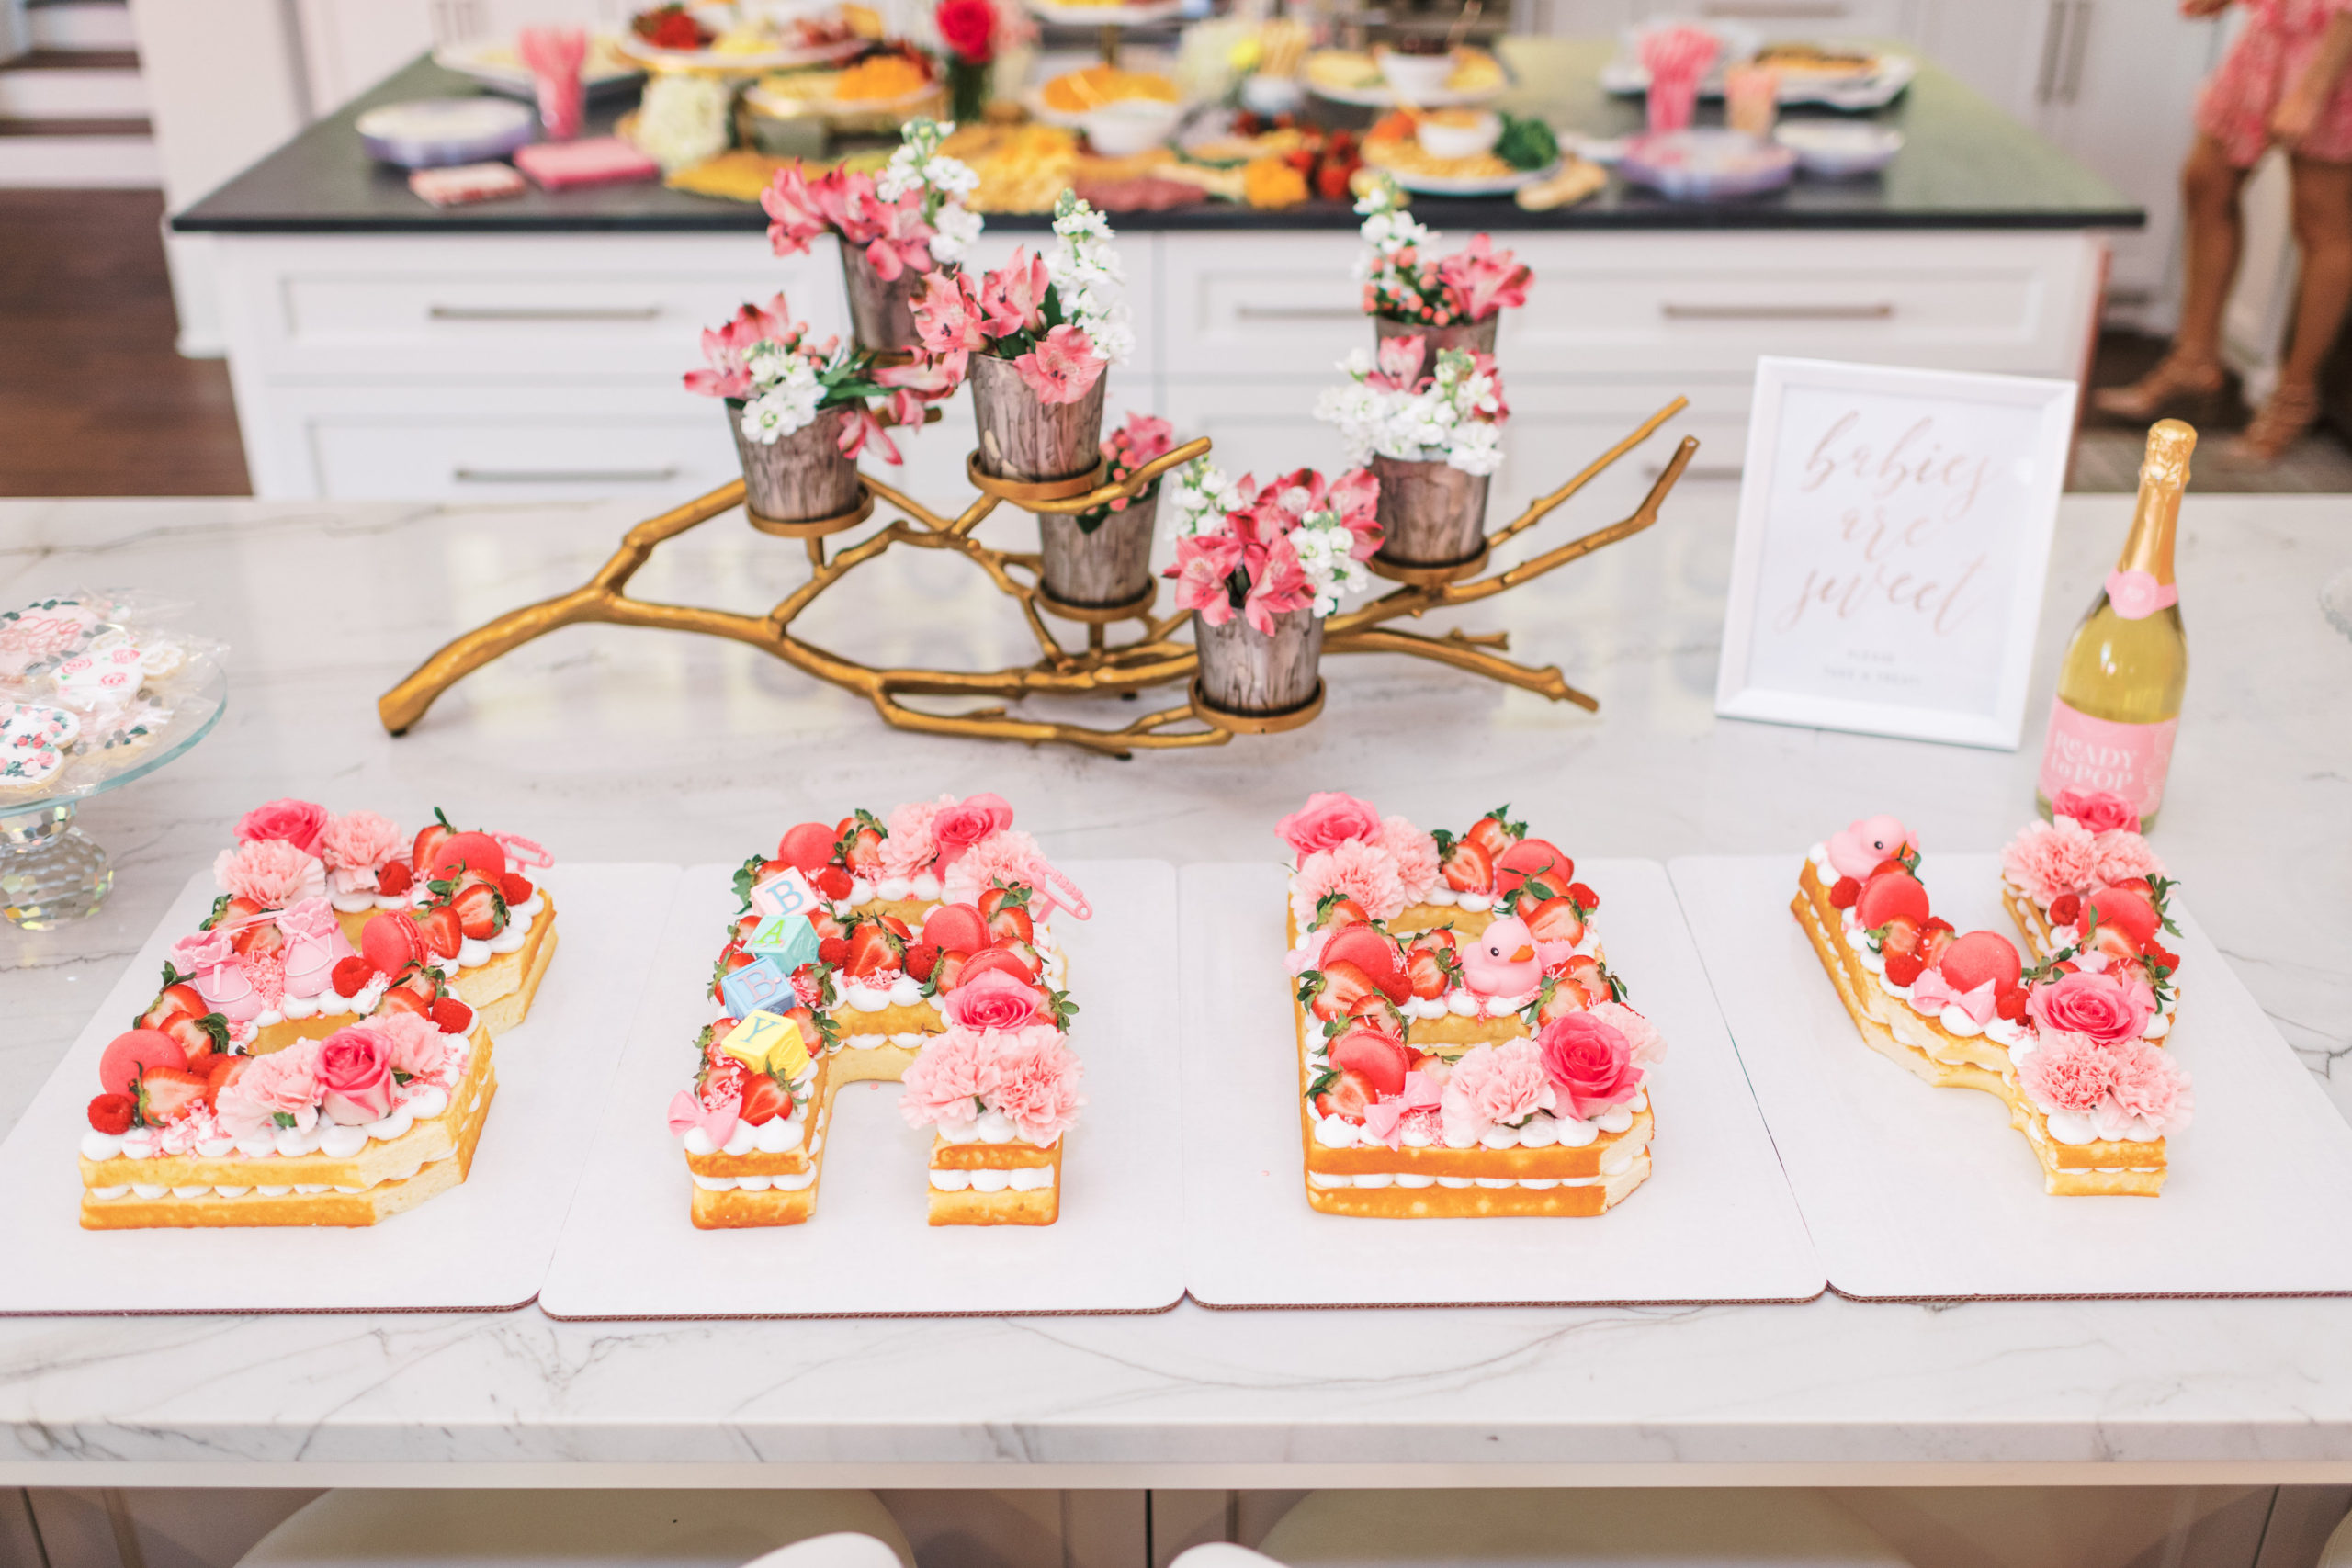 Cute Pink Baby Shower Ideas featured by top Houston lifestyle blogger and expecting mom, Jessica Crum.   Pink Baby Shower by popular Houston motherhood blogger, Jessica Crum: image of a pink baby shower cake by Busy Bees Bakery HTX.